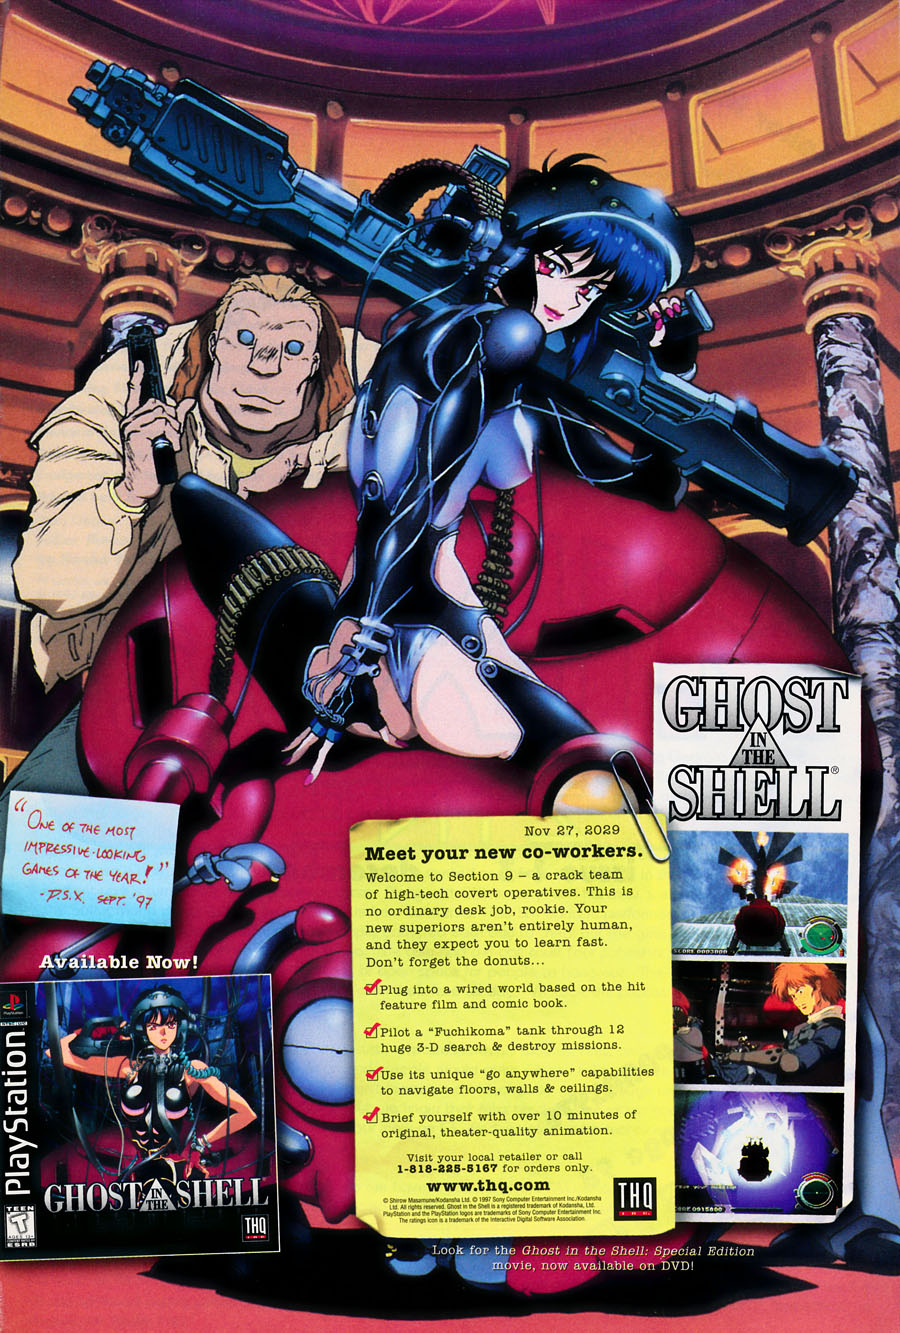 Ghost-in-the-shell-playstation-console-video-game-THQ-Issue-3-December-1997